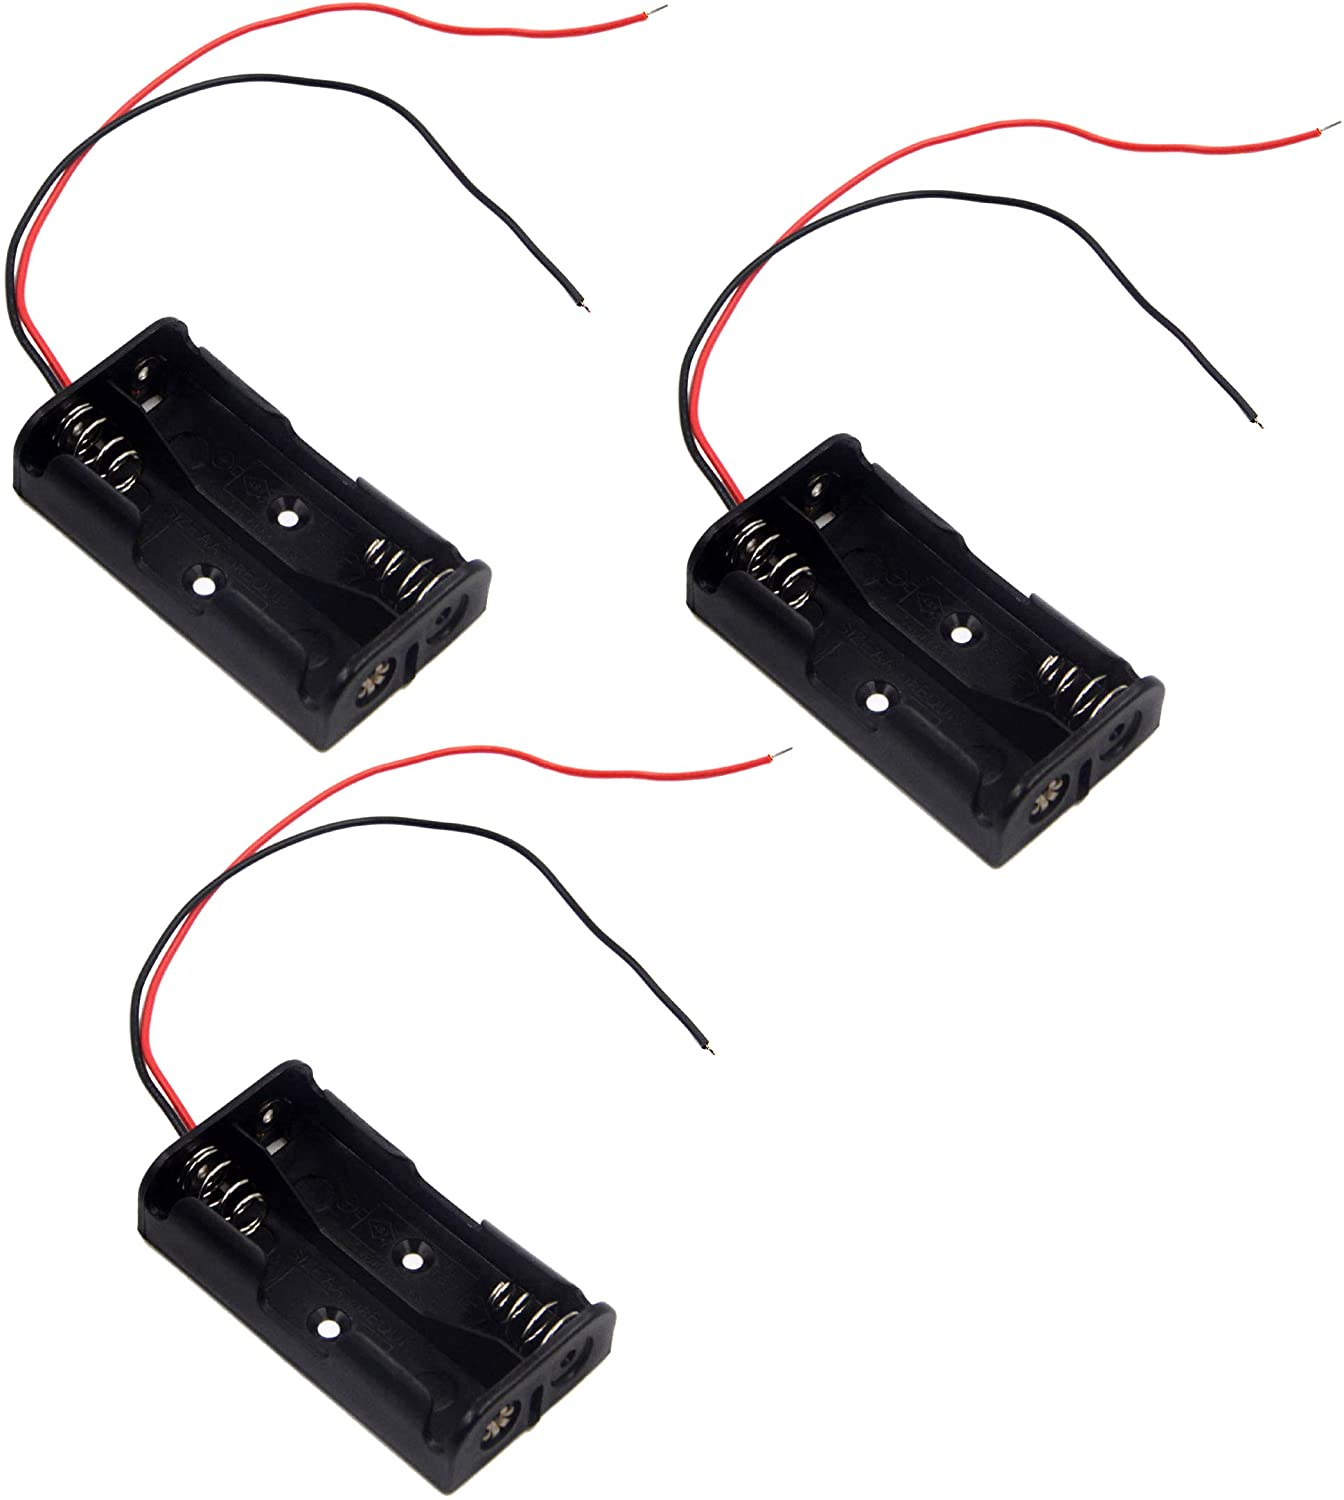 LAMPVPATH (Pack of 3) 2 AA Battery Holder, 2 AA Battery Holder with Leads, 2 AA Battery Holder with Wires